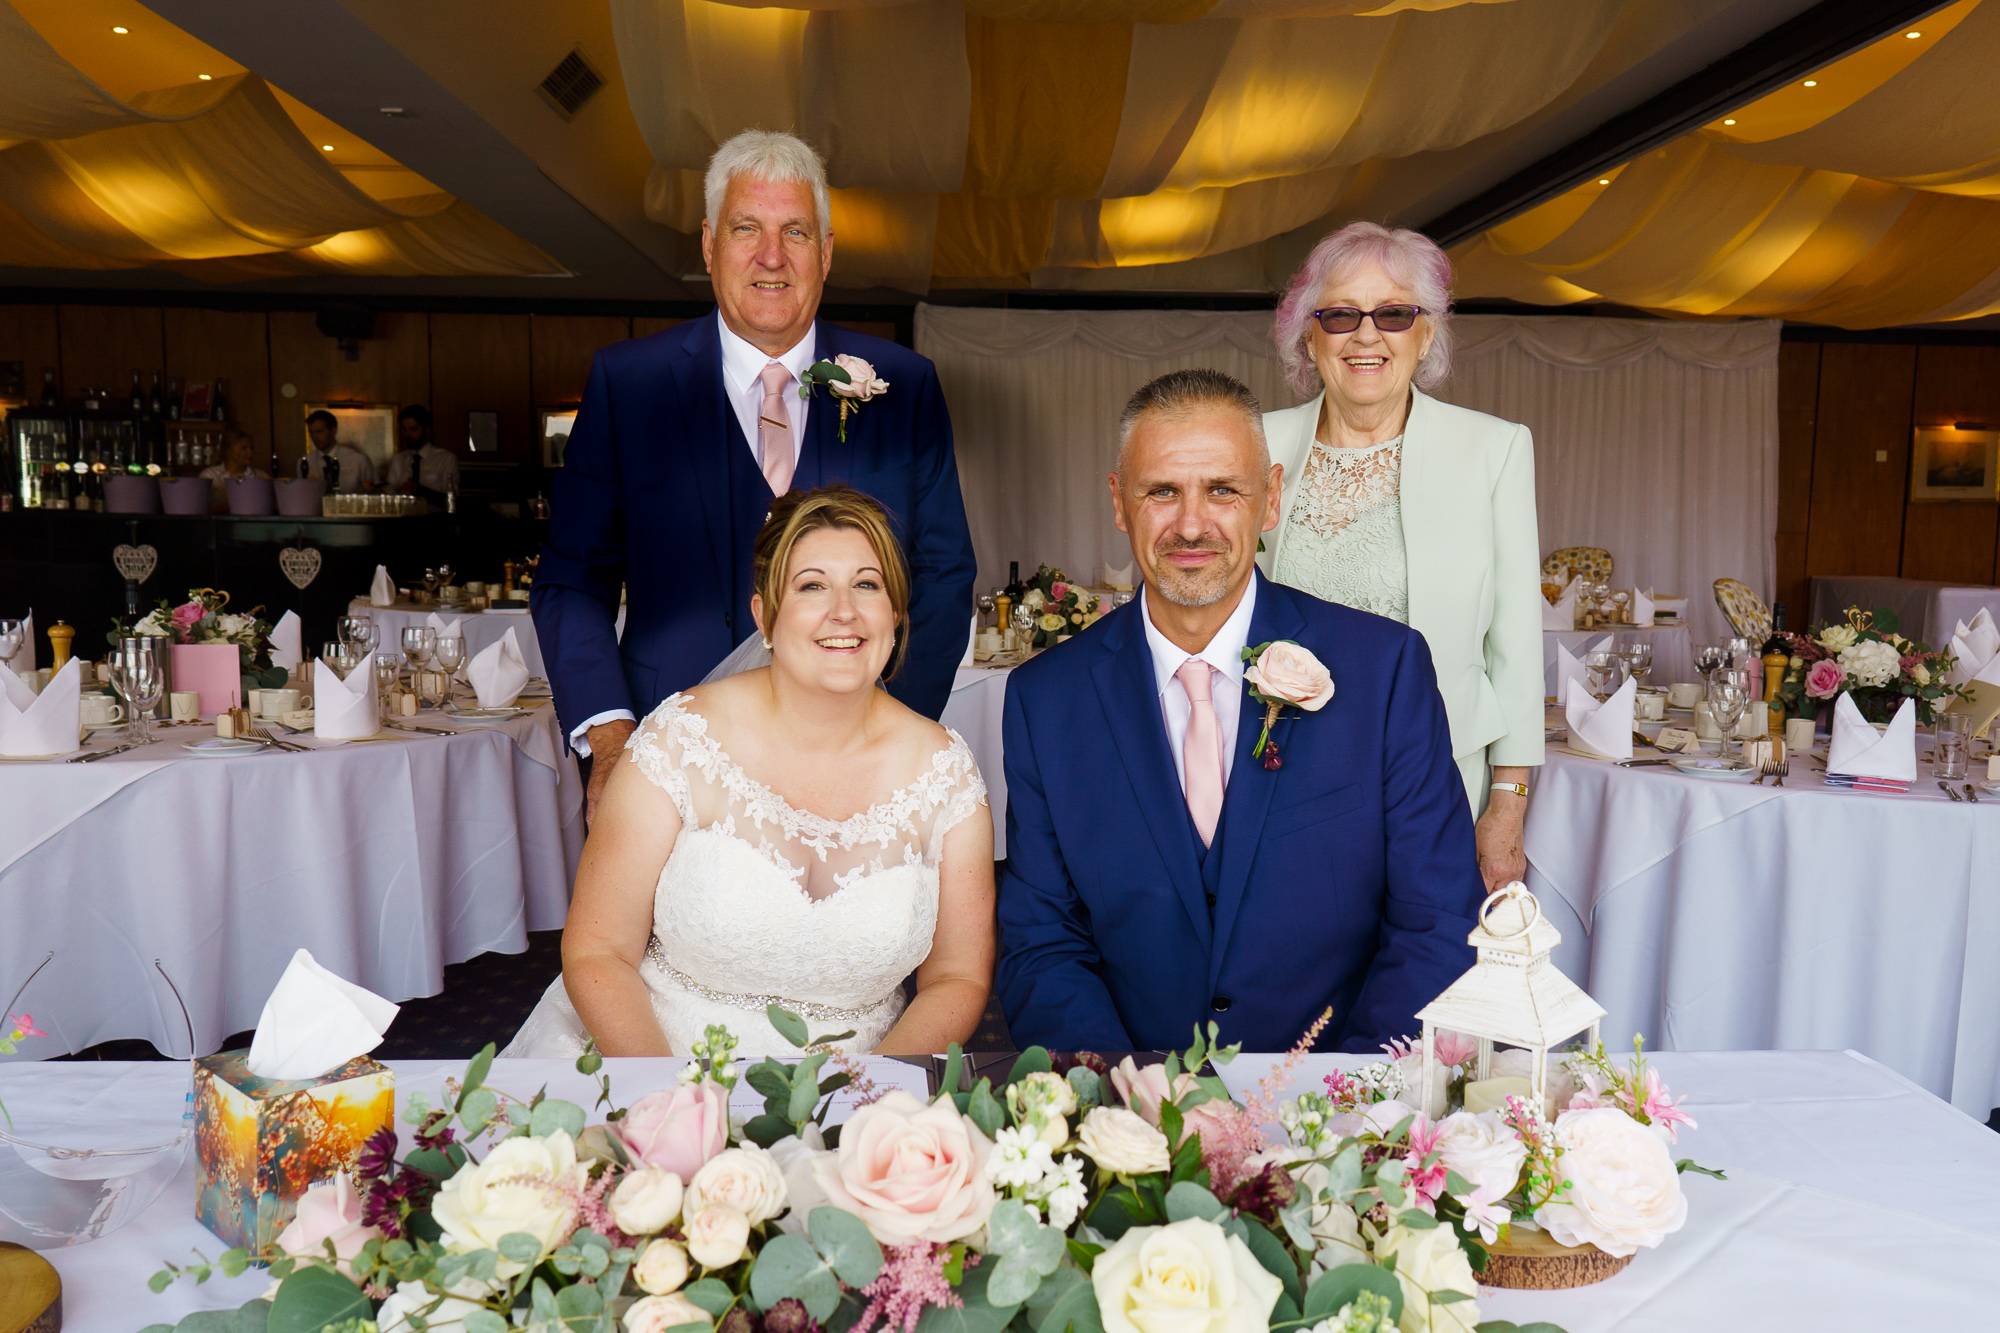 brdie and groom and their witnesses at royal southern yacht club